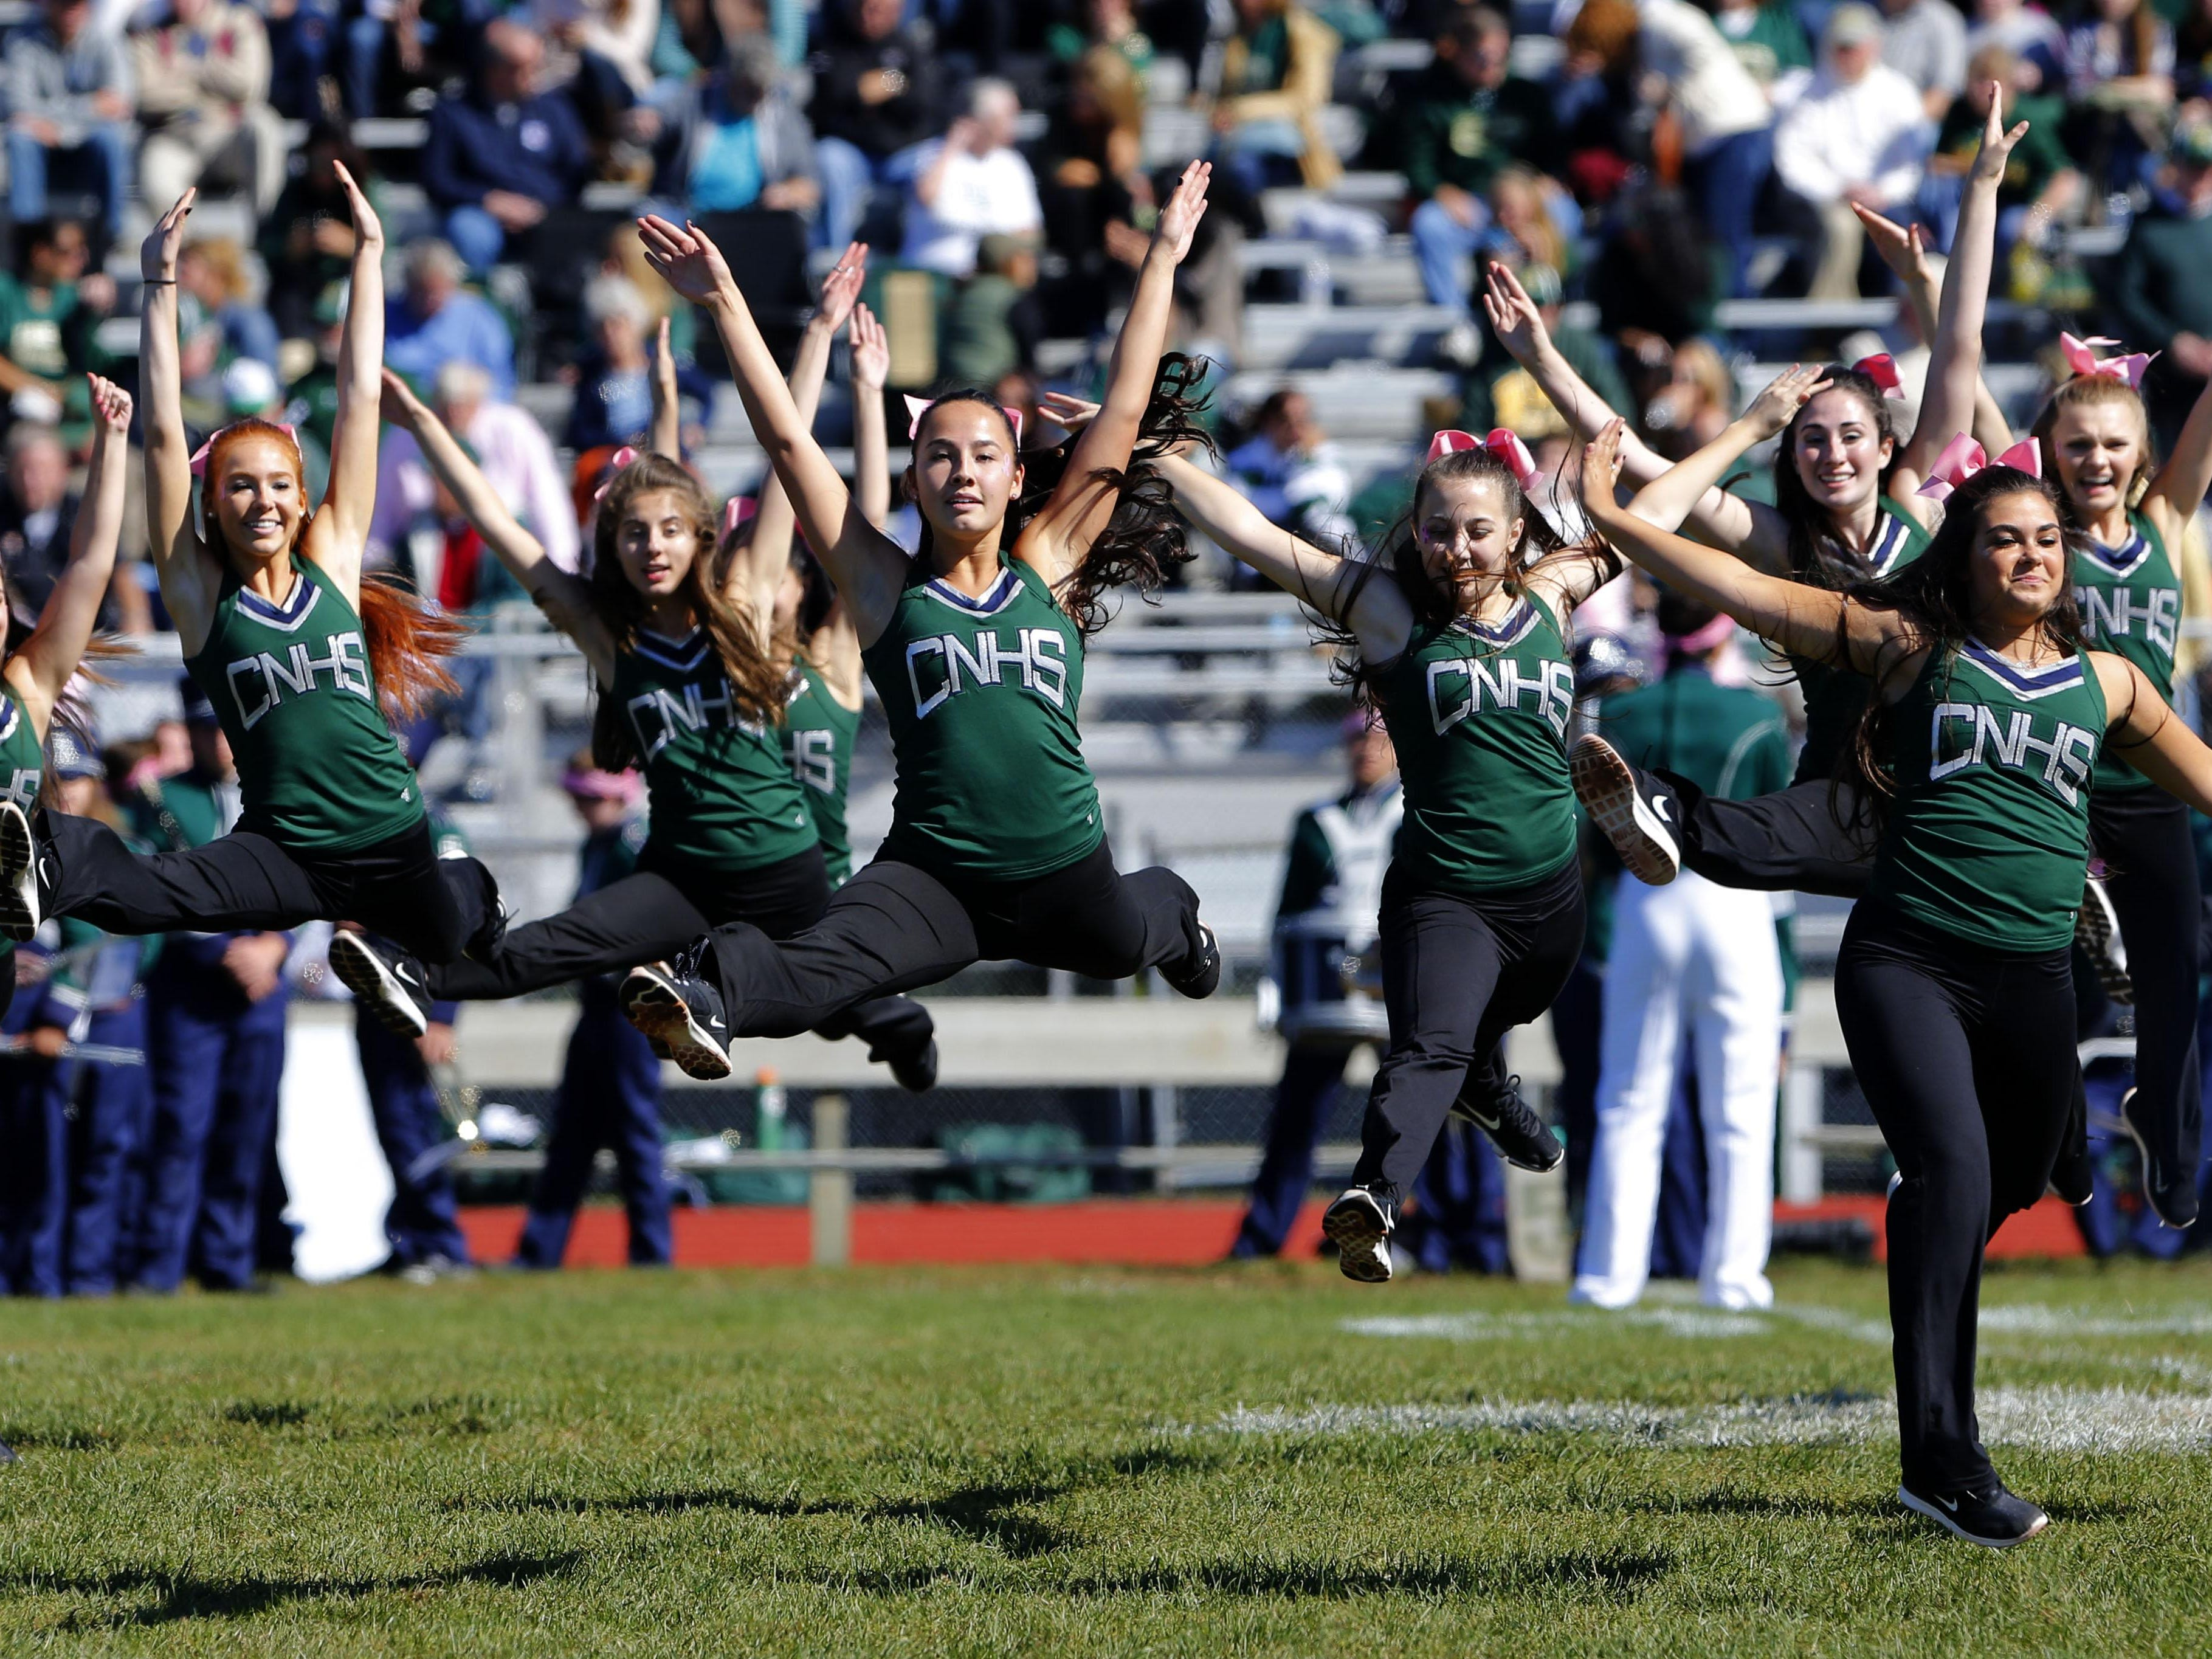 Members of the Colts Neck dance team perform during half time at Colts Neck High School, Colts Neck,NJ. Saturday, October 10, 2015.